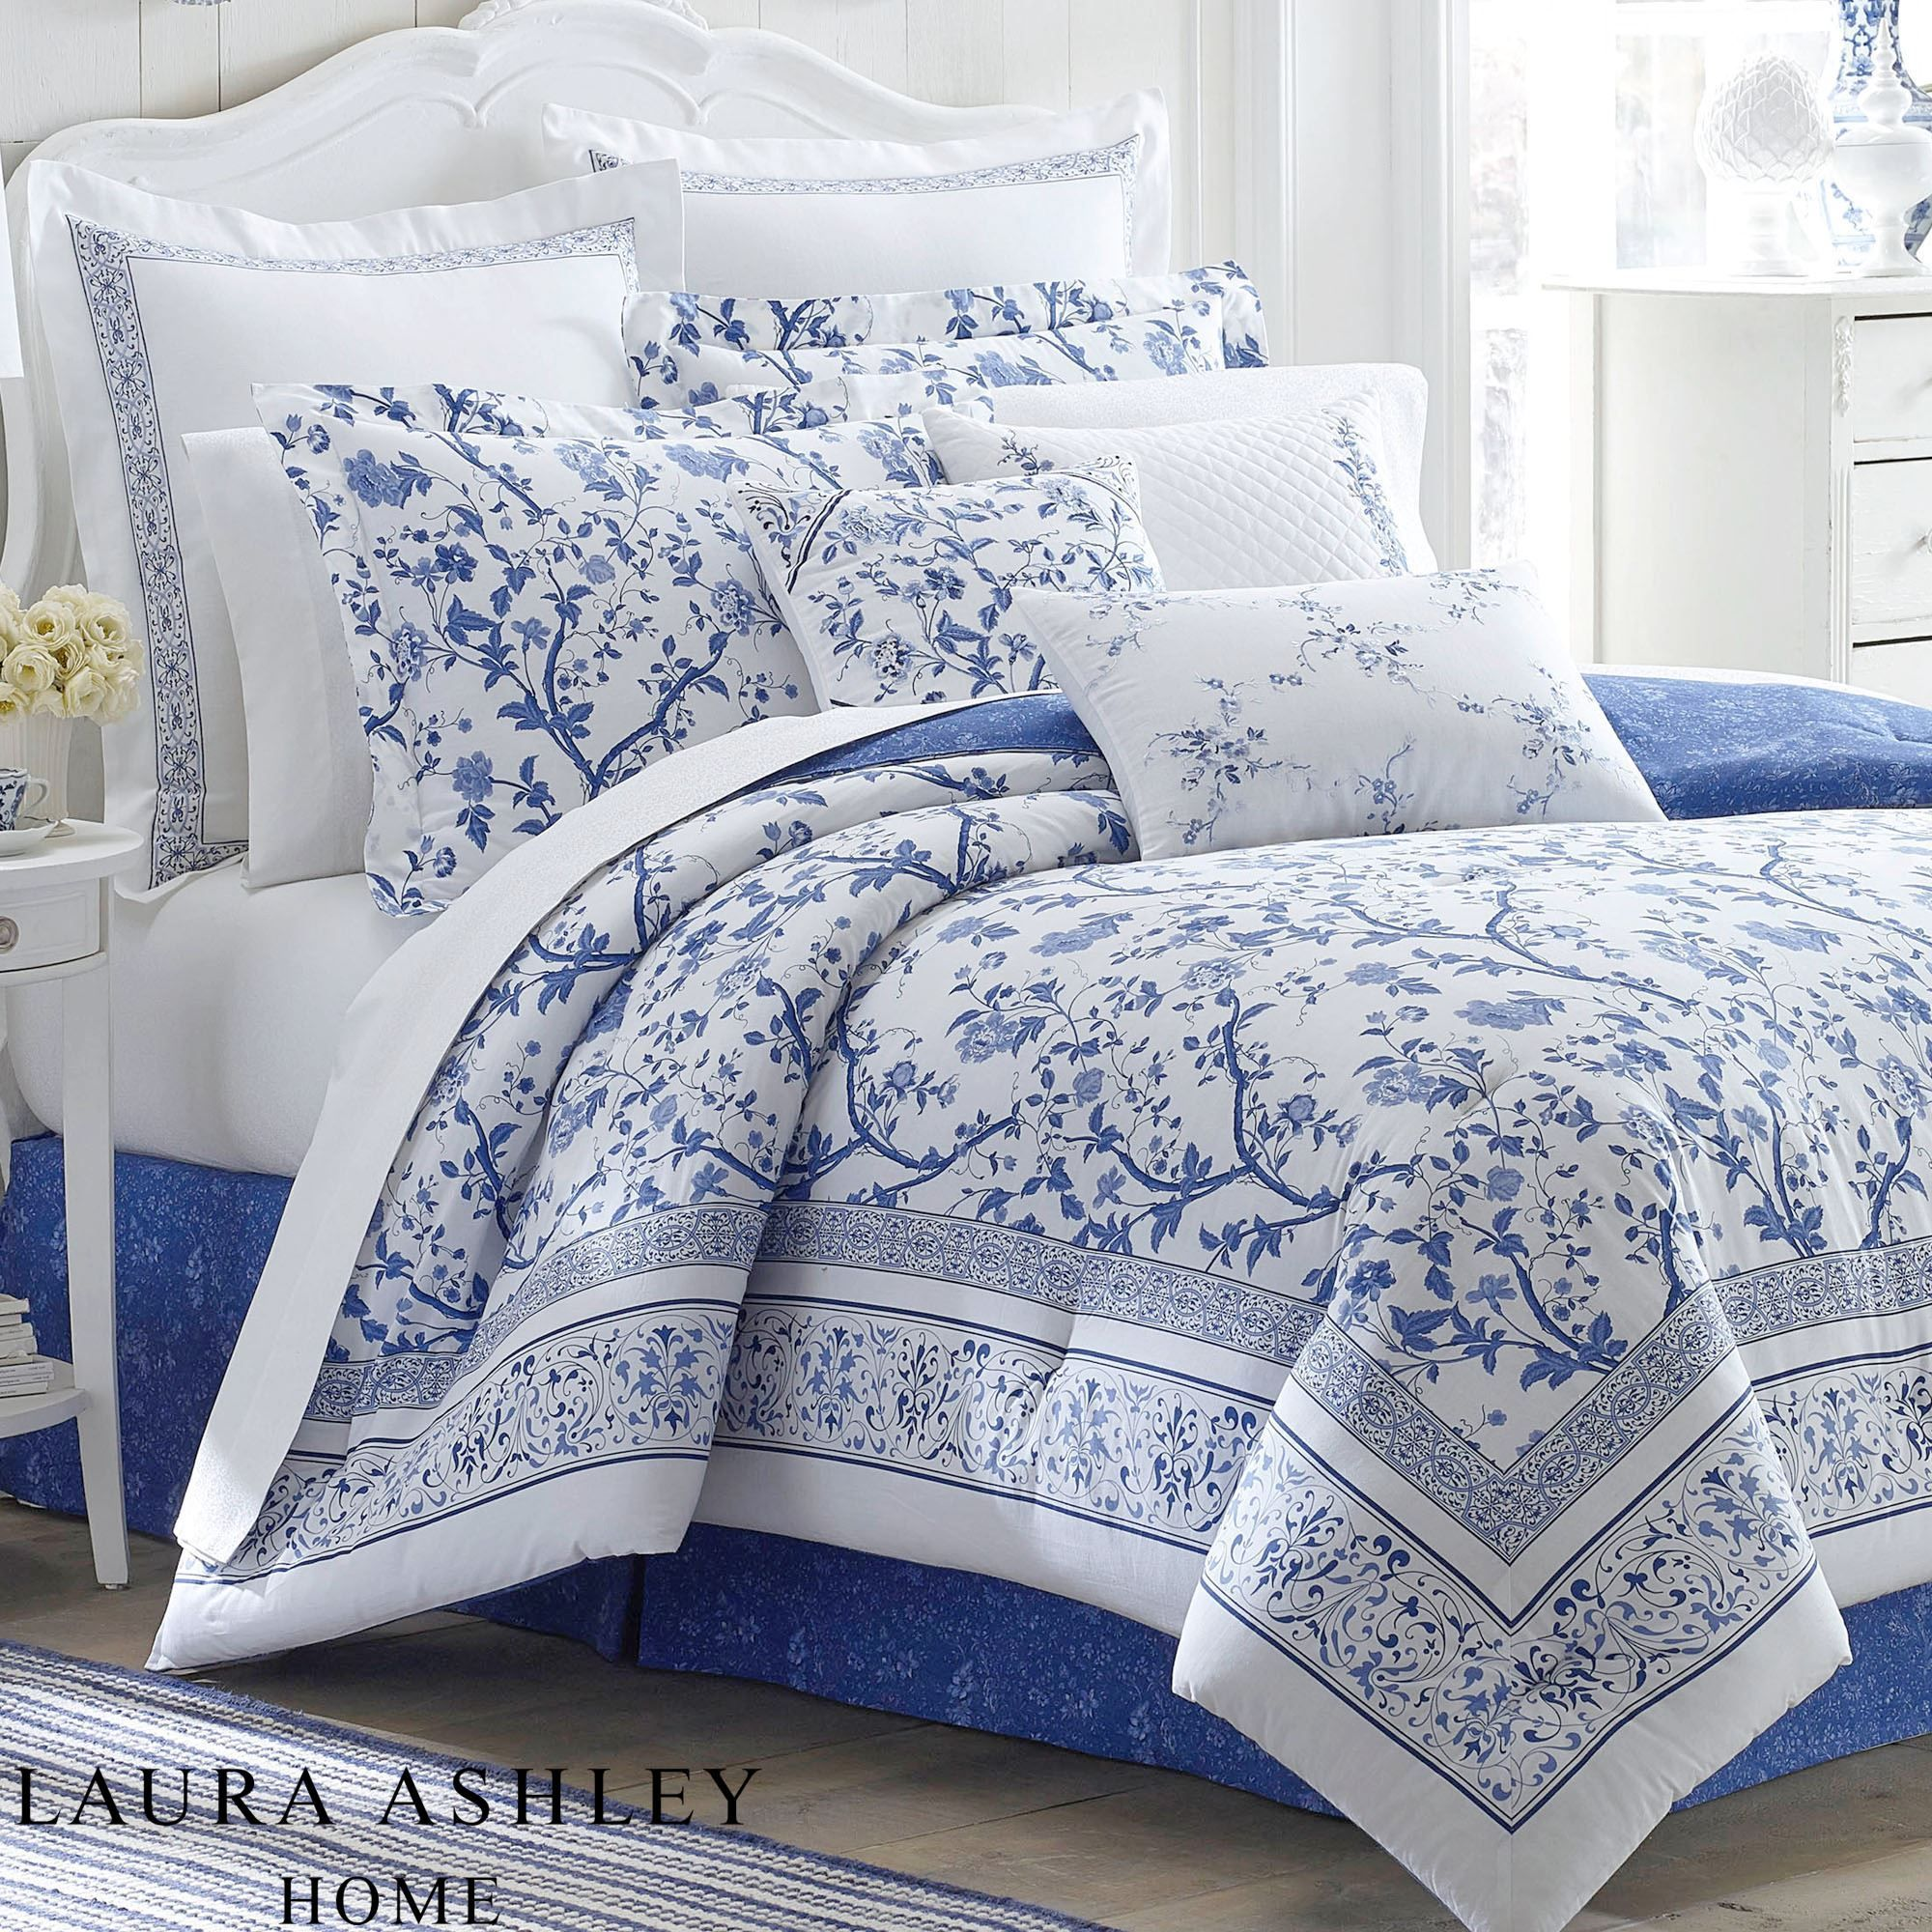 comforters p white from bedding comforter set new york by floral midori j queen